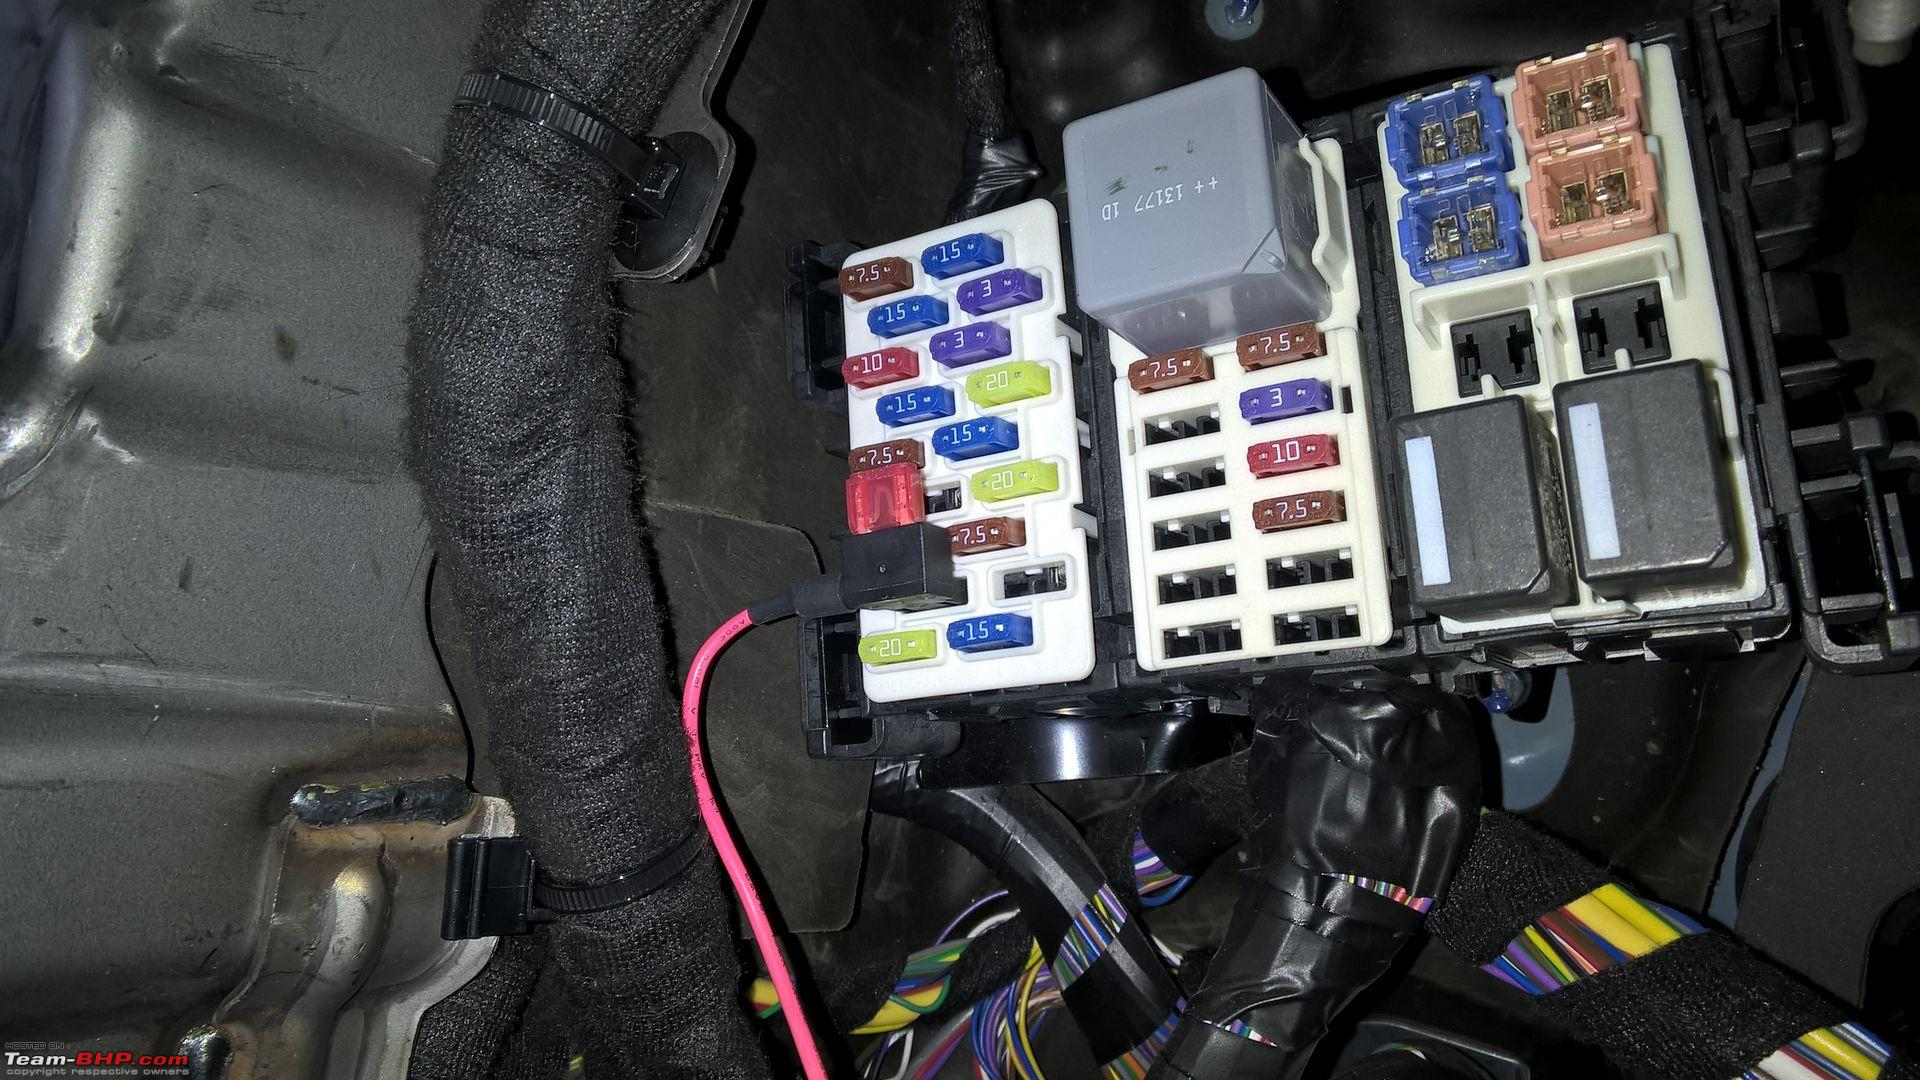 1405246d1439985339 diy hardwiring your dashcam fuse tap fitted best way to tap into car fuse box diy fuse tap \u2022 wiring diagrams how to wire a fuse box in a car at bakdesigns.co